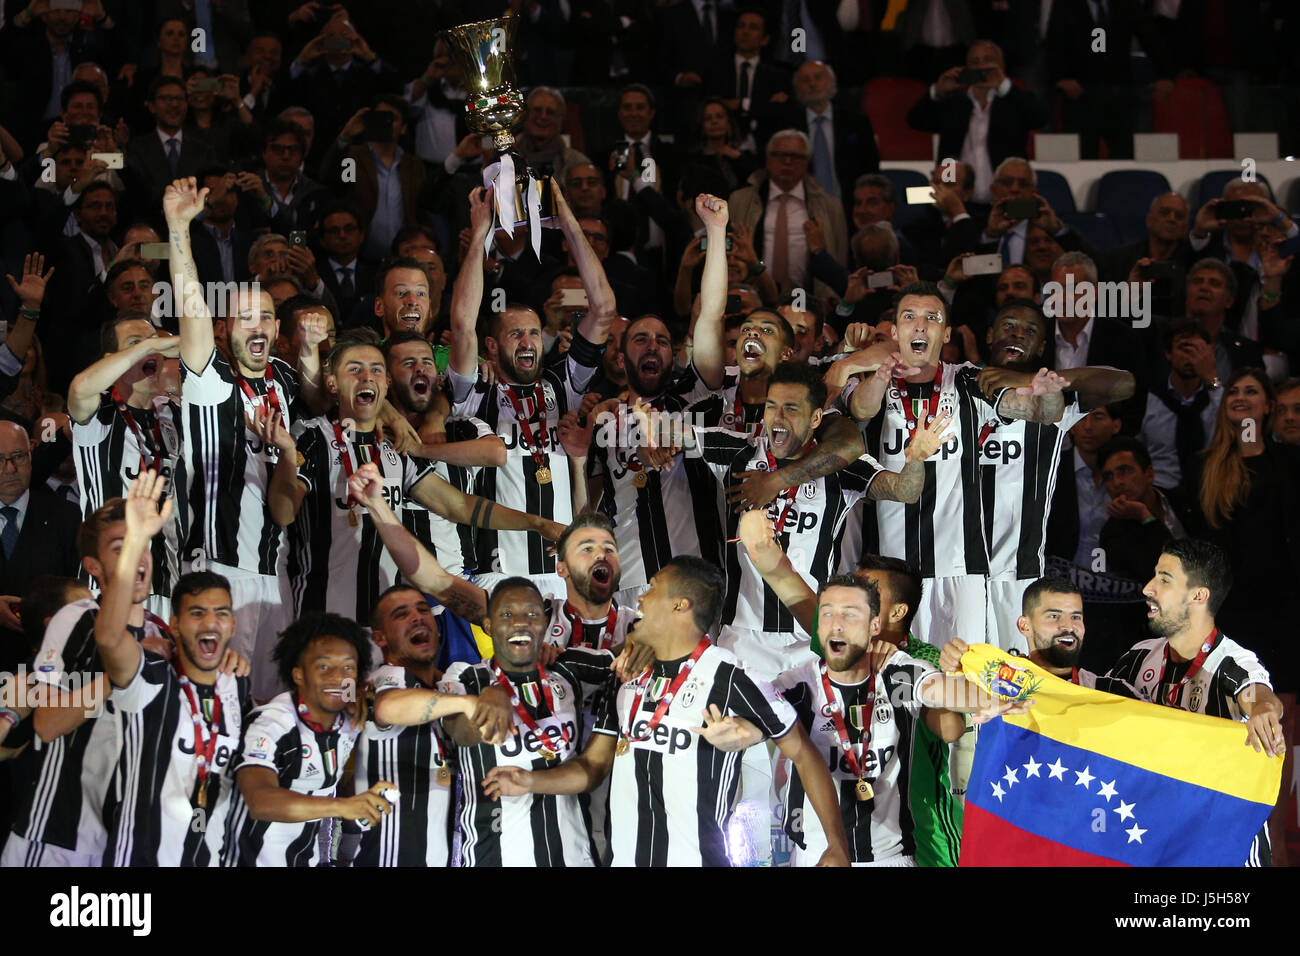 aceb35e1e TIM CUP FINAL MATCH. F.C Juventus vs S.S. Lazio. Juventus Win the match and  celebrates TIM CUP Final soccer match S.S. Lazio vs ...